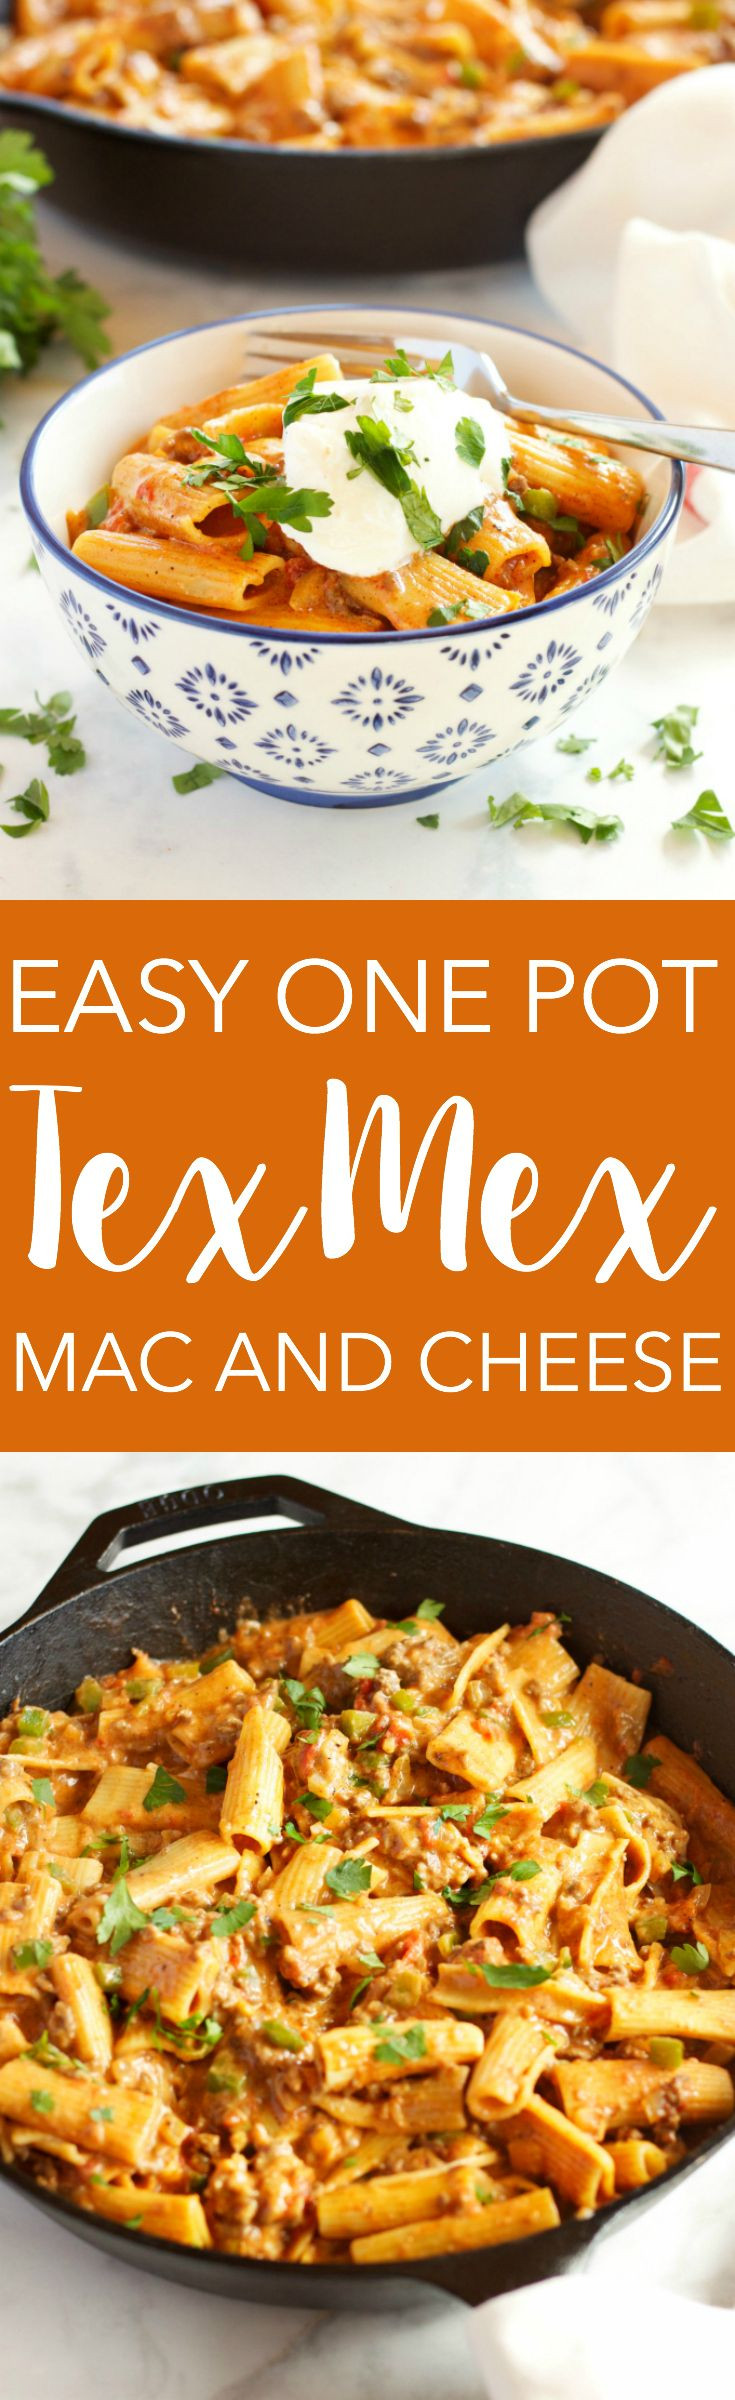 Easy One Pot Tex Mex Mac and Cheese | Recipe | 30 minute ...